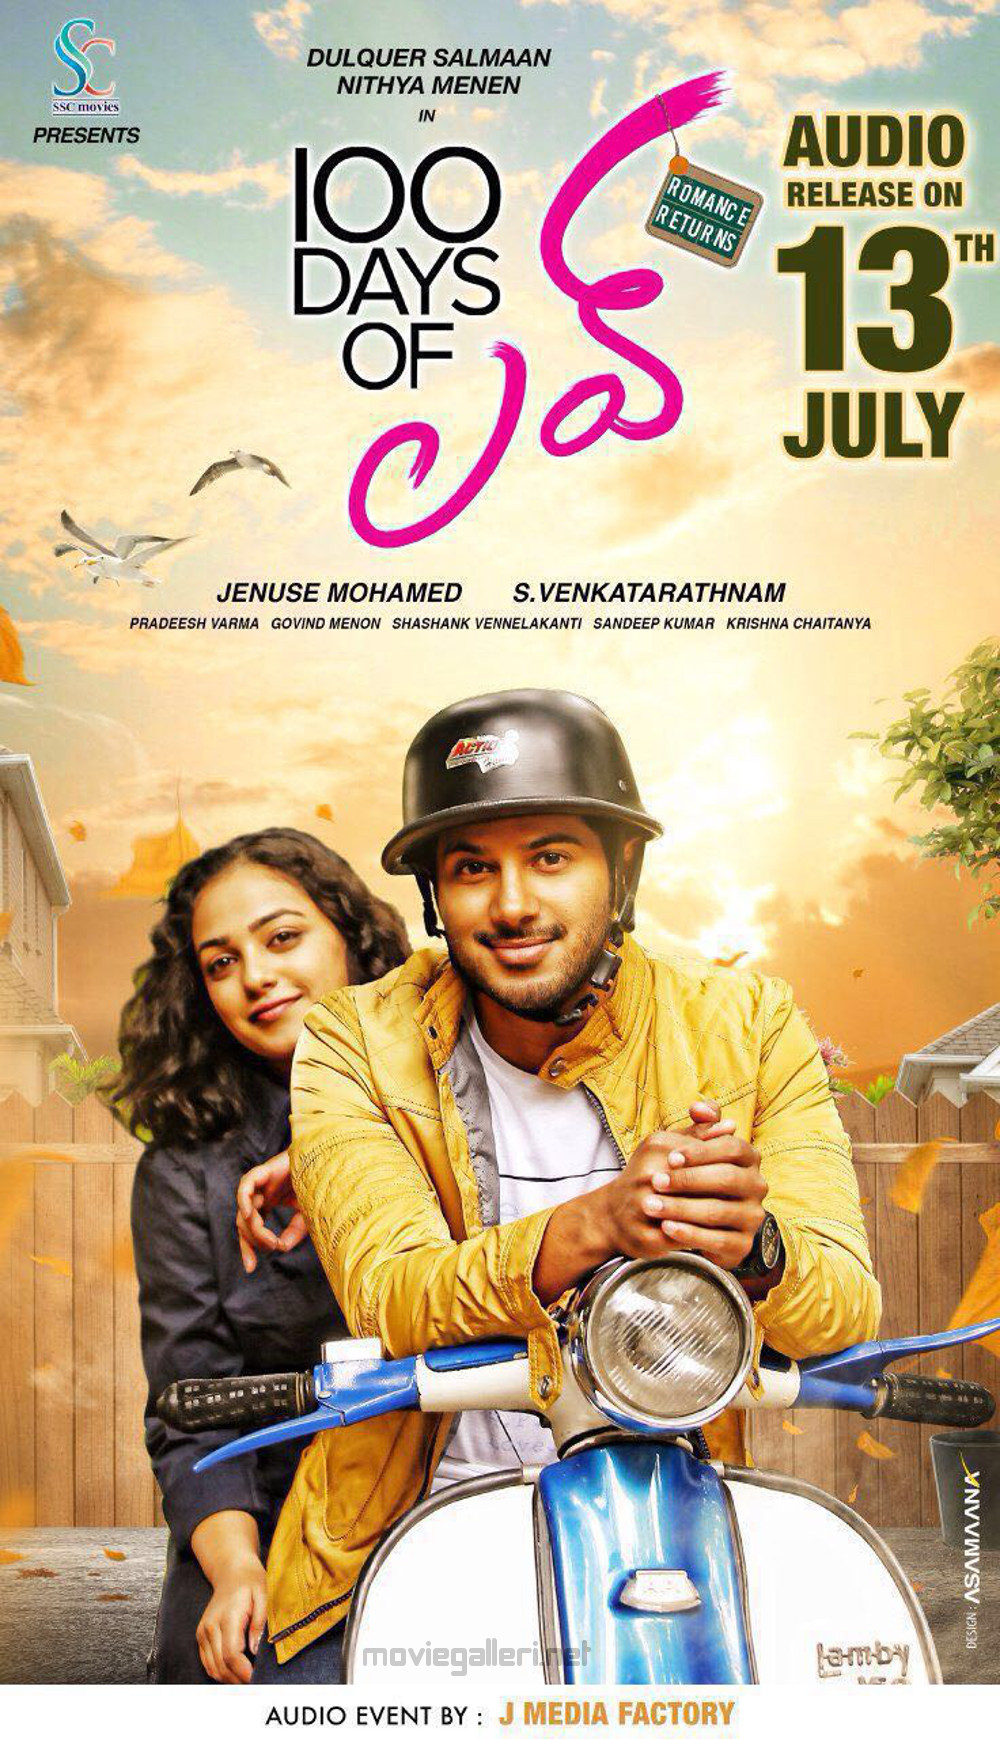 Actor Dulquer Salmaan & Actress Nithya Menon in 100 Days of Love Audio Release on 13 July Poster